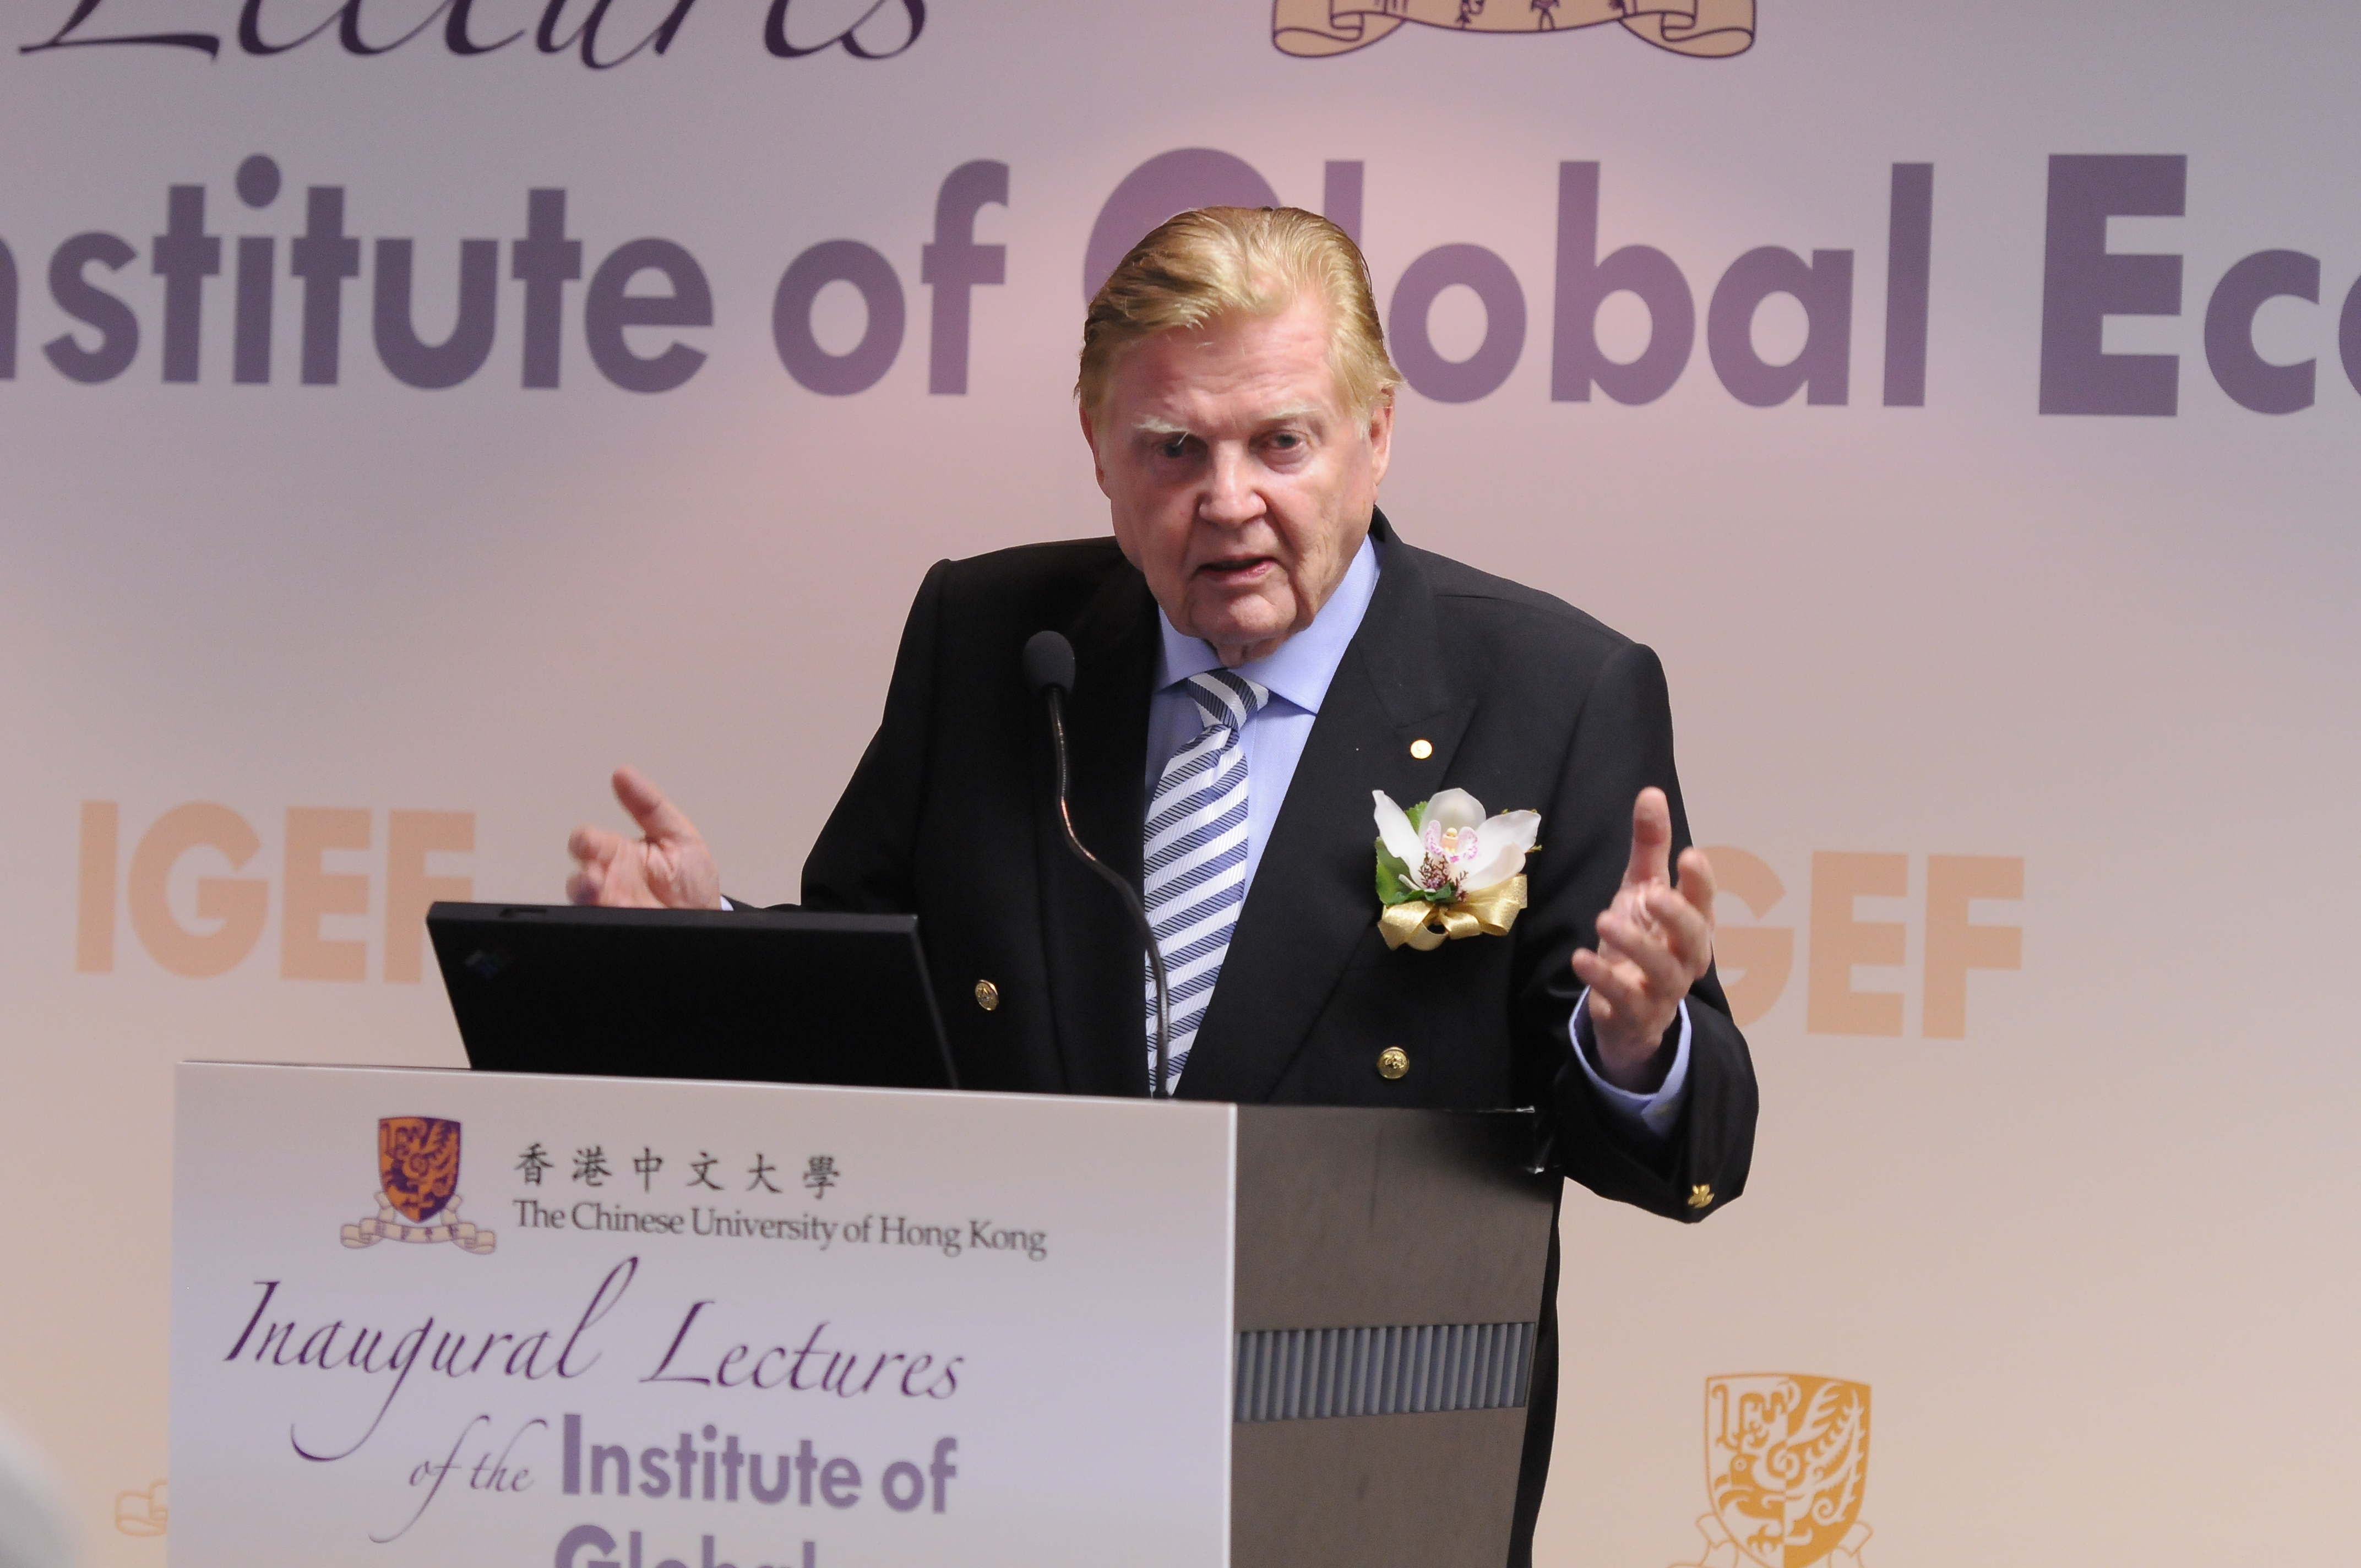 Lecture by Prof. Robert A. Mundell, 1999 Nobel Laureate in Economic Sciences and Distinguished Professor-at-Large, CUHK.